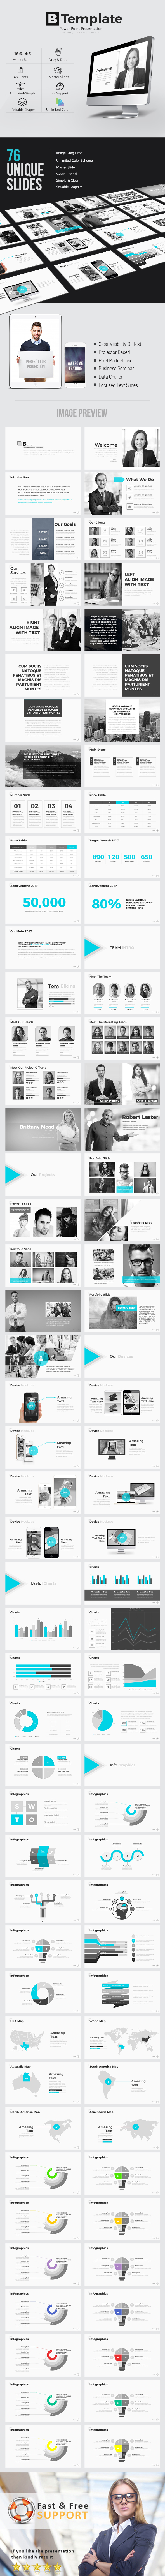 B Template Power point Presentation - Business PowerPoint Templates